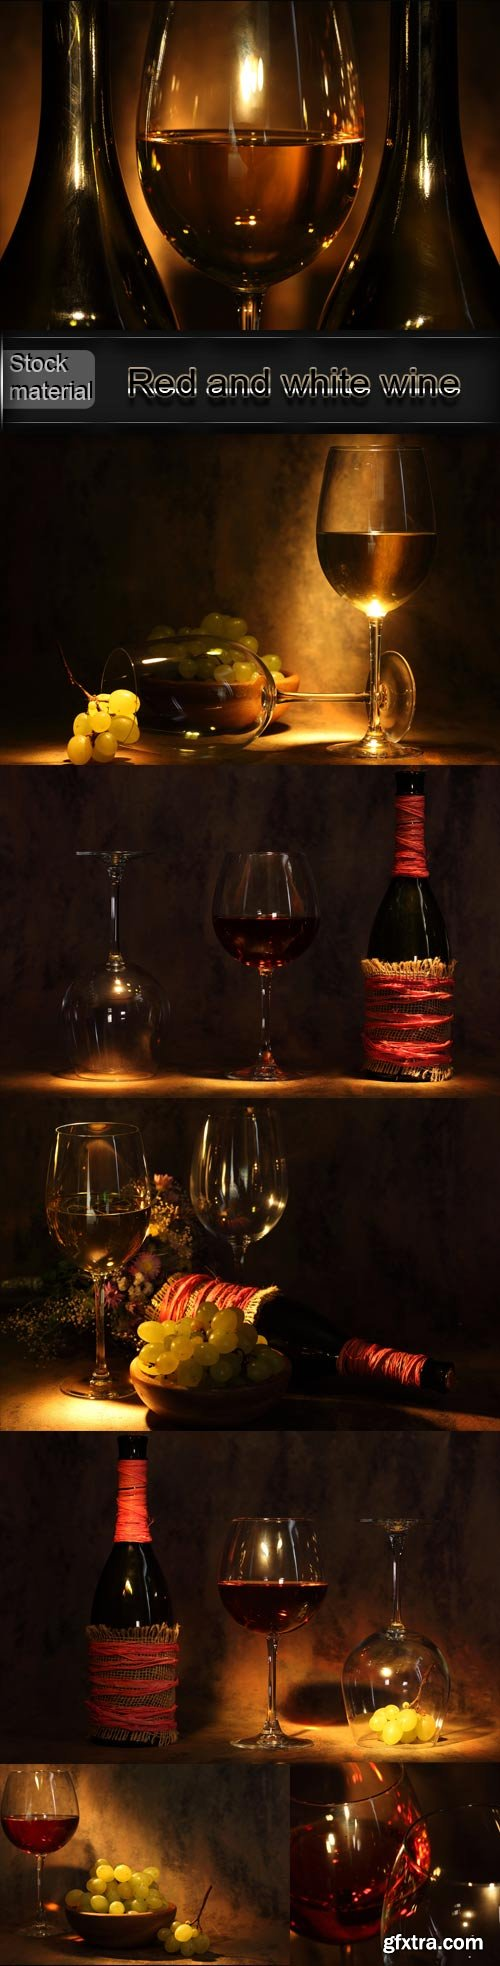 Red and white wine in bottles and glasses